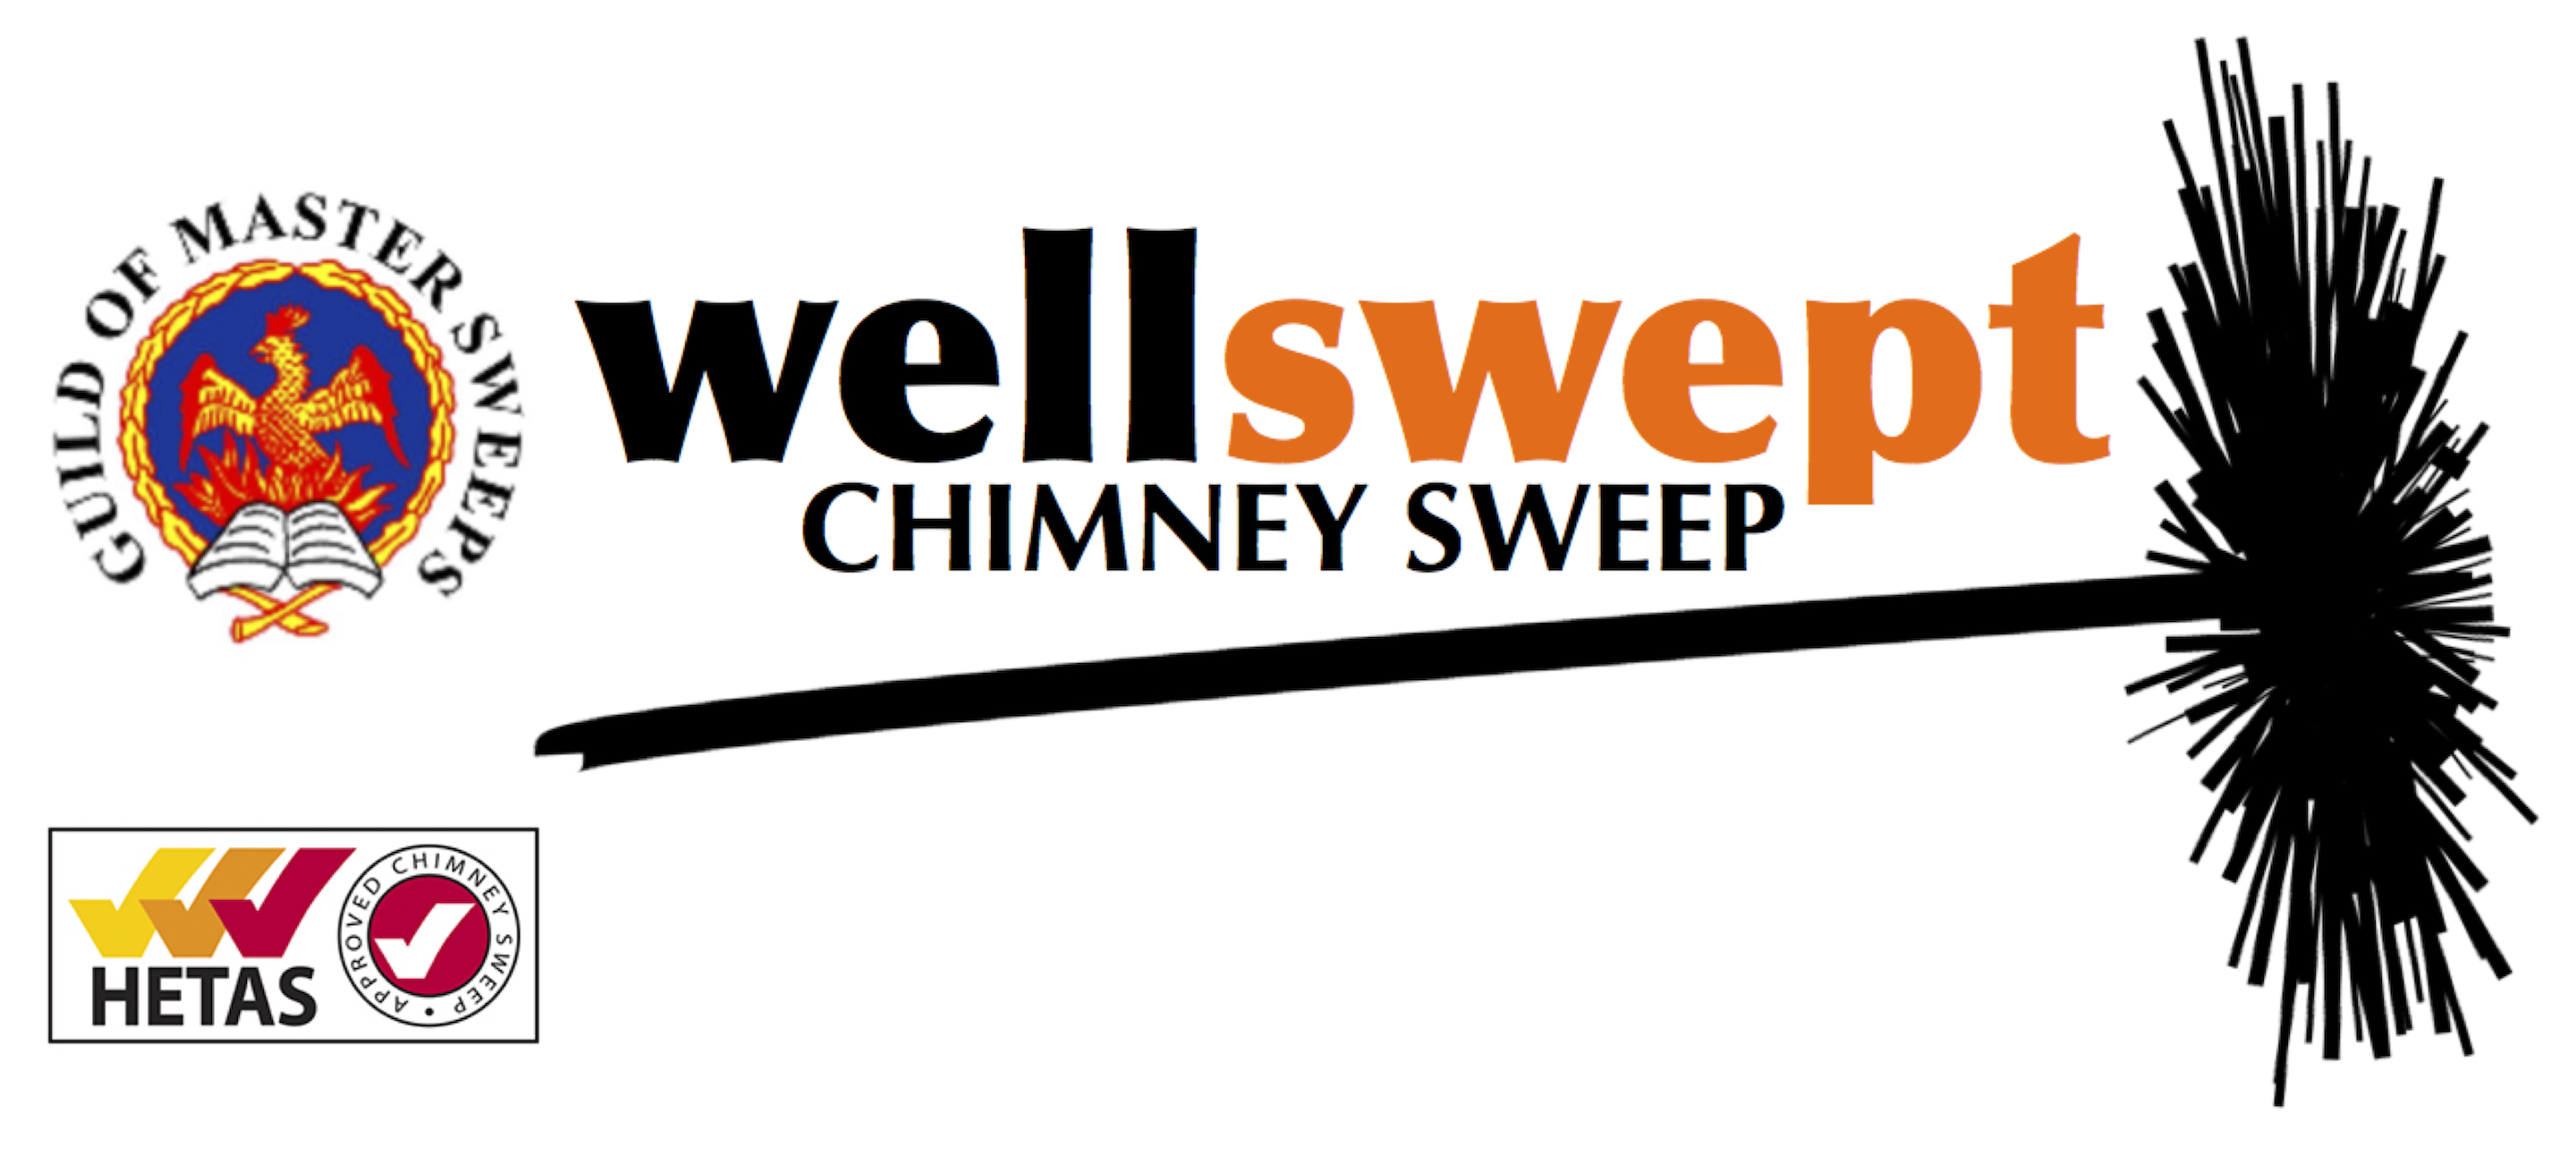 a well swept flue is a clean, safe flue!